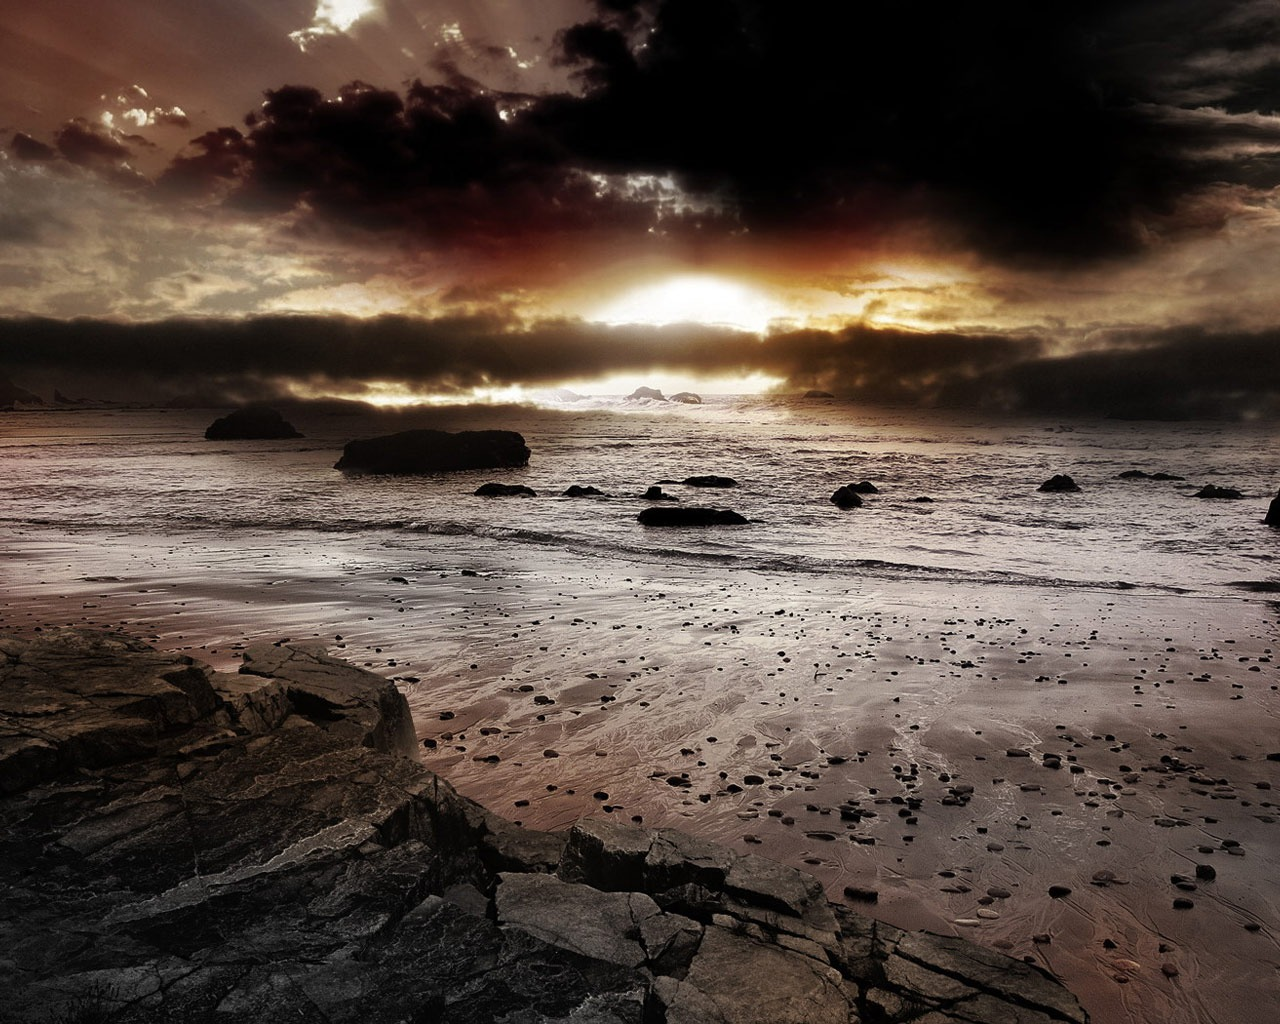 Dark Sunset Wallpaper Landscape Nature Wallpapers in jpg format